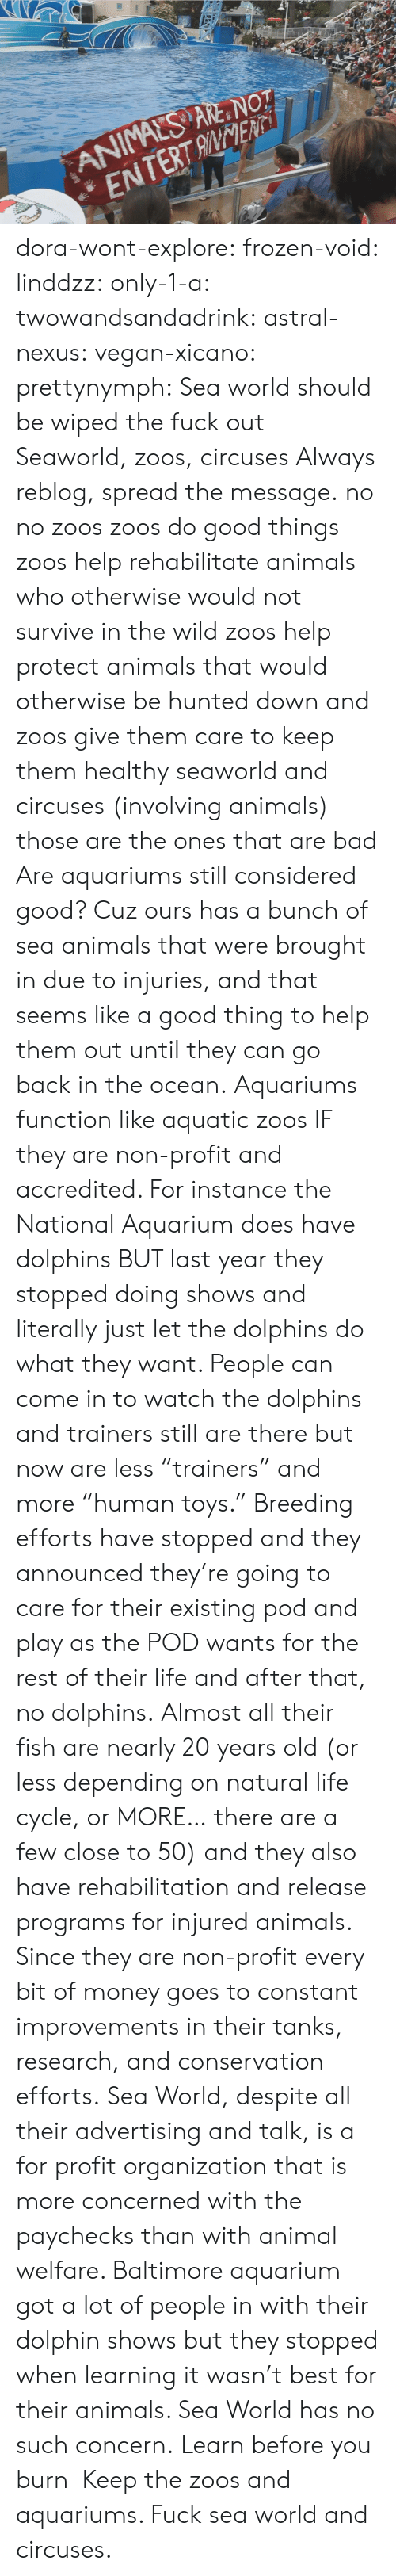 "Dora: ANIMALS ARE NOT  ENTERTANENTi dora-wont-explore:   frozen-void:  linddzz:  only-1-a:  twowandsandadrink:  astral-nexus:  vegan-xicano:  prettynymph:  Sea world should be wiped the fuck out  Seaworld, zoos, circuses  Always reblog, spread the message.  no no zoos zoos do good things zoos help rehabilitate animals who otherwise would not survive in the wild zoos help protect animals that would otherwise be hunted down and zoos give them care to keep them healthy seaworld and circuses (involving animals) those are the ones that are bad  Are aquariums still considered good? Cuz ours has a bunch of sea animals that were brought in due to injuries, and that seems like a good thing to help them out until they can go back in the ocean.  Aquariums function like aquatic zoos IF they are non-profit and accredited. For instance the National Aquarium does have dolphins BUT last year they stopped doing shows and literally just let the dolphins do what they want. People can come in to watch the dolphins and trainers still are there but now are less ""trainers"" and more ""human toys."" Breeding efforts have stopped and they announced they're going to care for their existing pod and play as the POD wants for the rest of their life and after that, no dolphins. Almost all their fish are nearly 20 years old (or less depending on natural life cycle, or MORE… there are a few close to 50) and they also have rehabilitation and release programs for injured animals. Since they are non-profit every bit of money goes to constant improvements in their tanks, research, and conservation efforts. Sea World, despite all their advertising and talk, is a for profit organization that is more concerned with the paychecks than with animal welfare. Baltimore aquarium got a lot of people in with their dolphin shows but they stopped when learning it wasn't best for their animals. Sea World has no such concern.  Learn before you burn   Keep the zoos and aquariums. Fuck sea world and circuses."